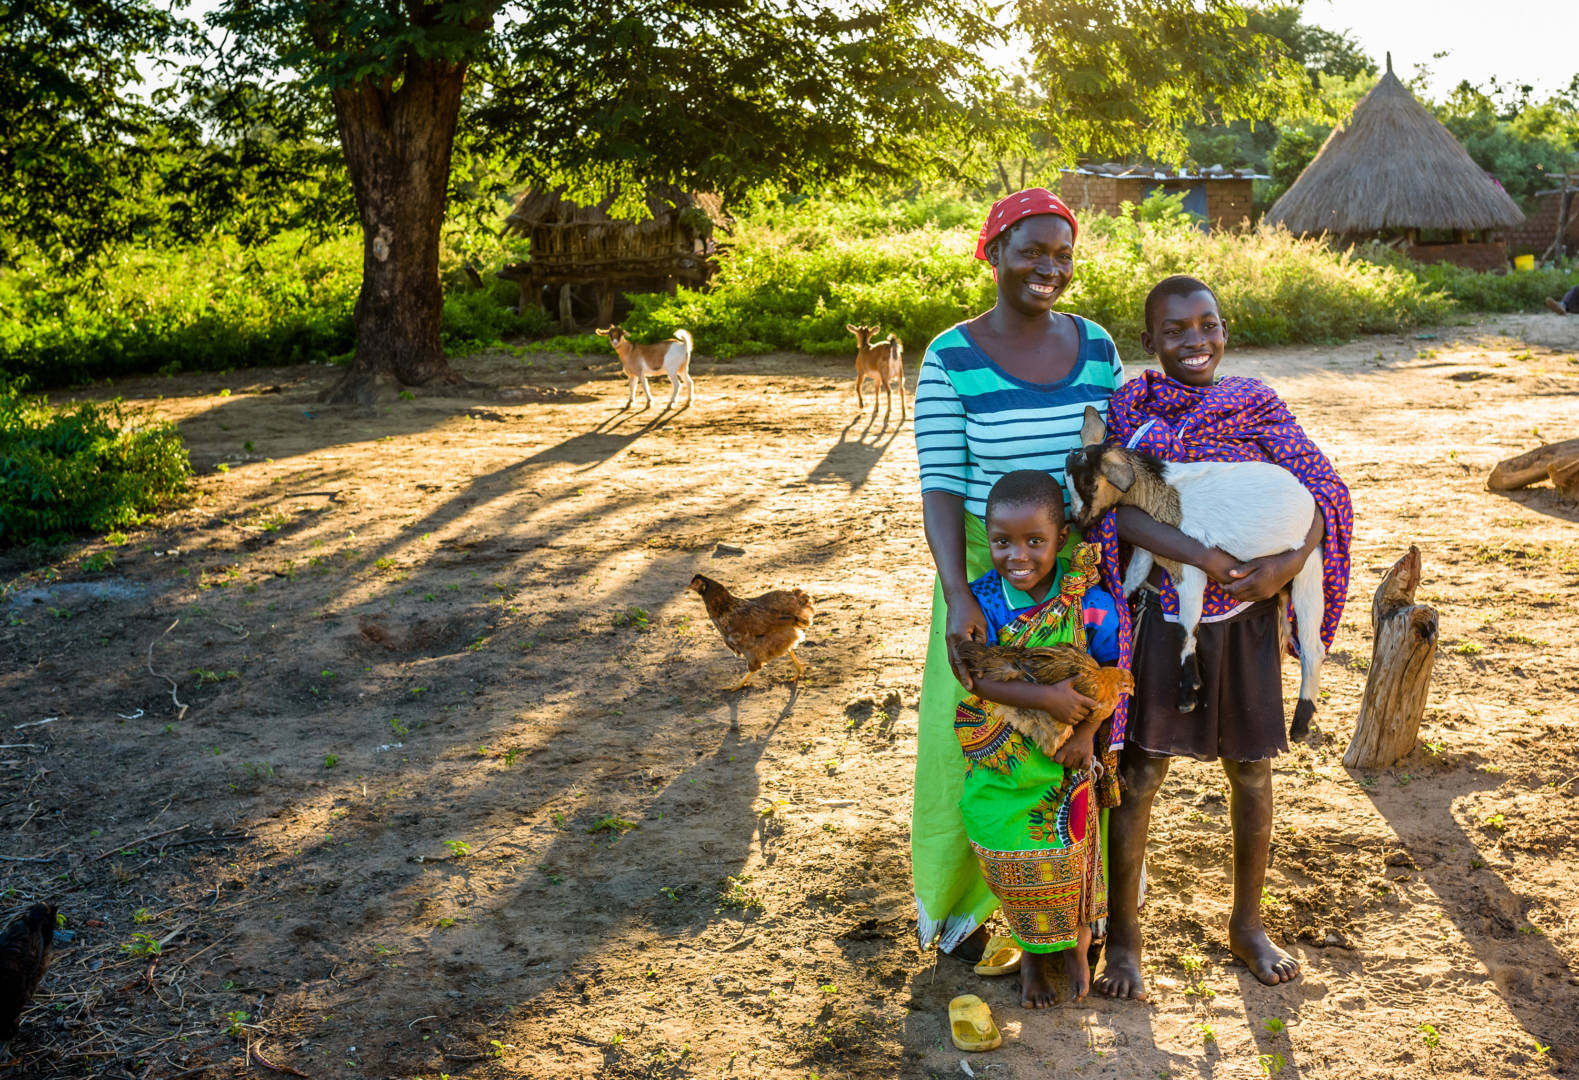 Chickens and goats from World Vision's Gift Catalog and child sponsorship set a family in Zambia on a path to prosperity.